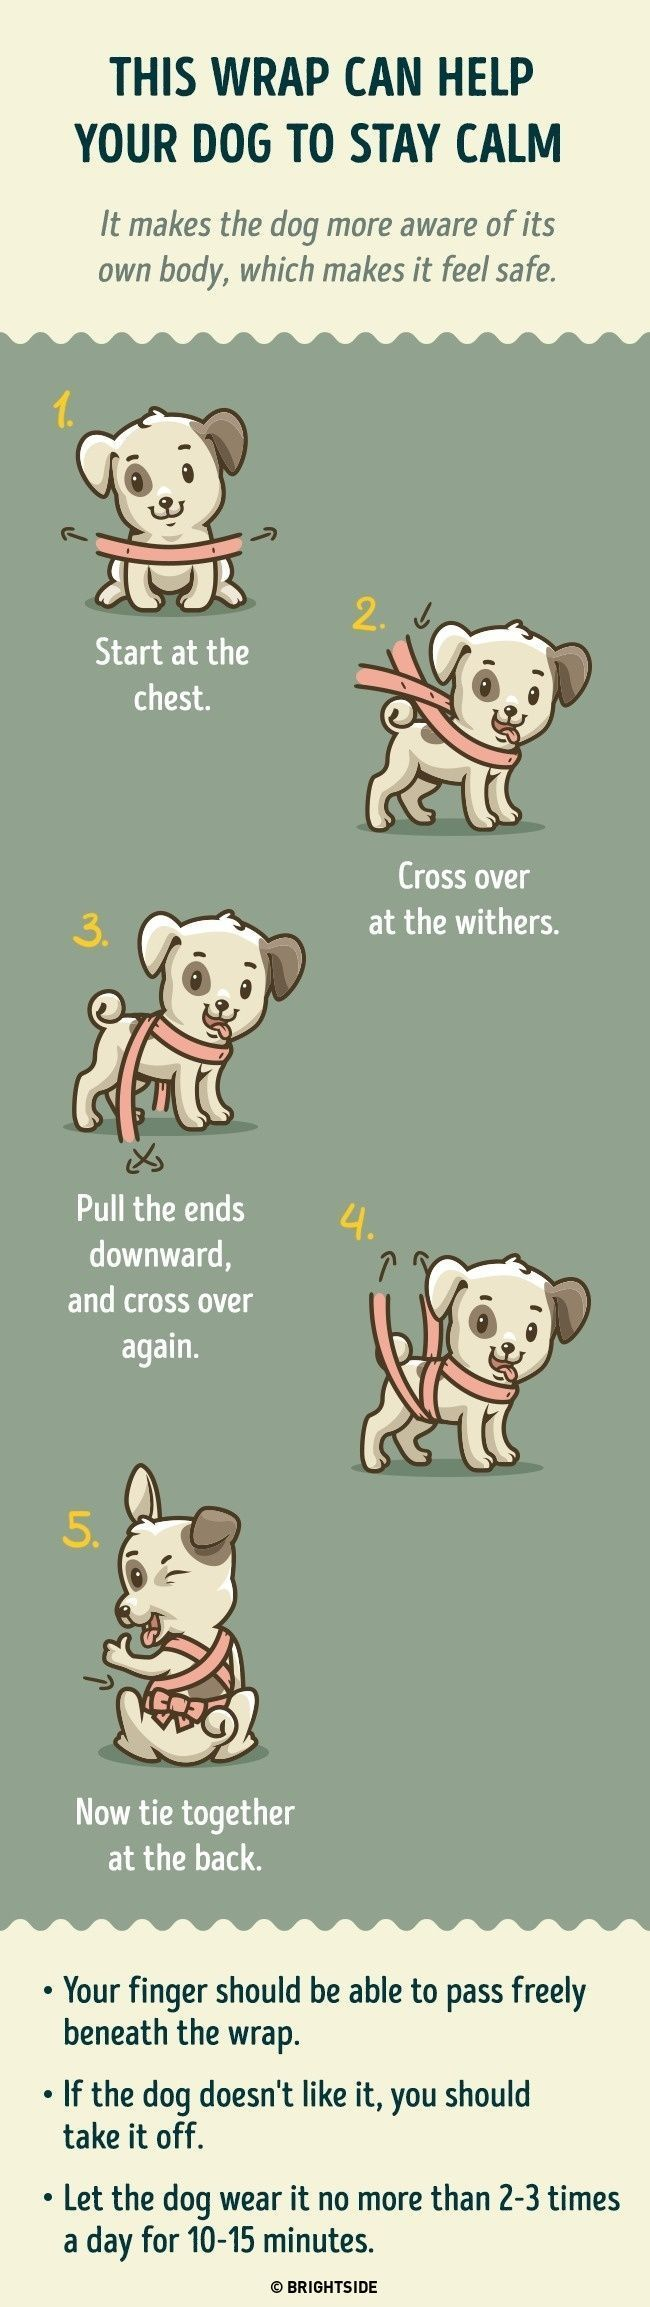 This dog wrapping technique can help keep a dog calm. Especially helpful during storms, fireworks etc @KaufmannsPuppy